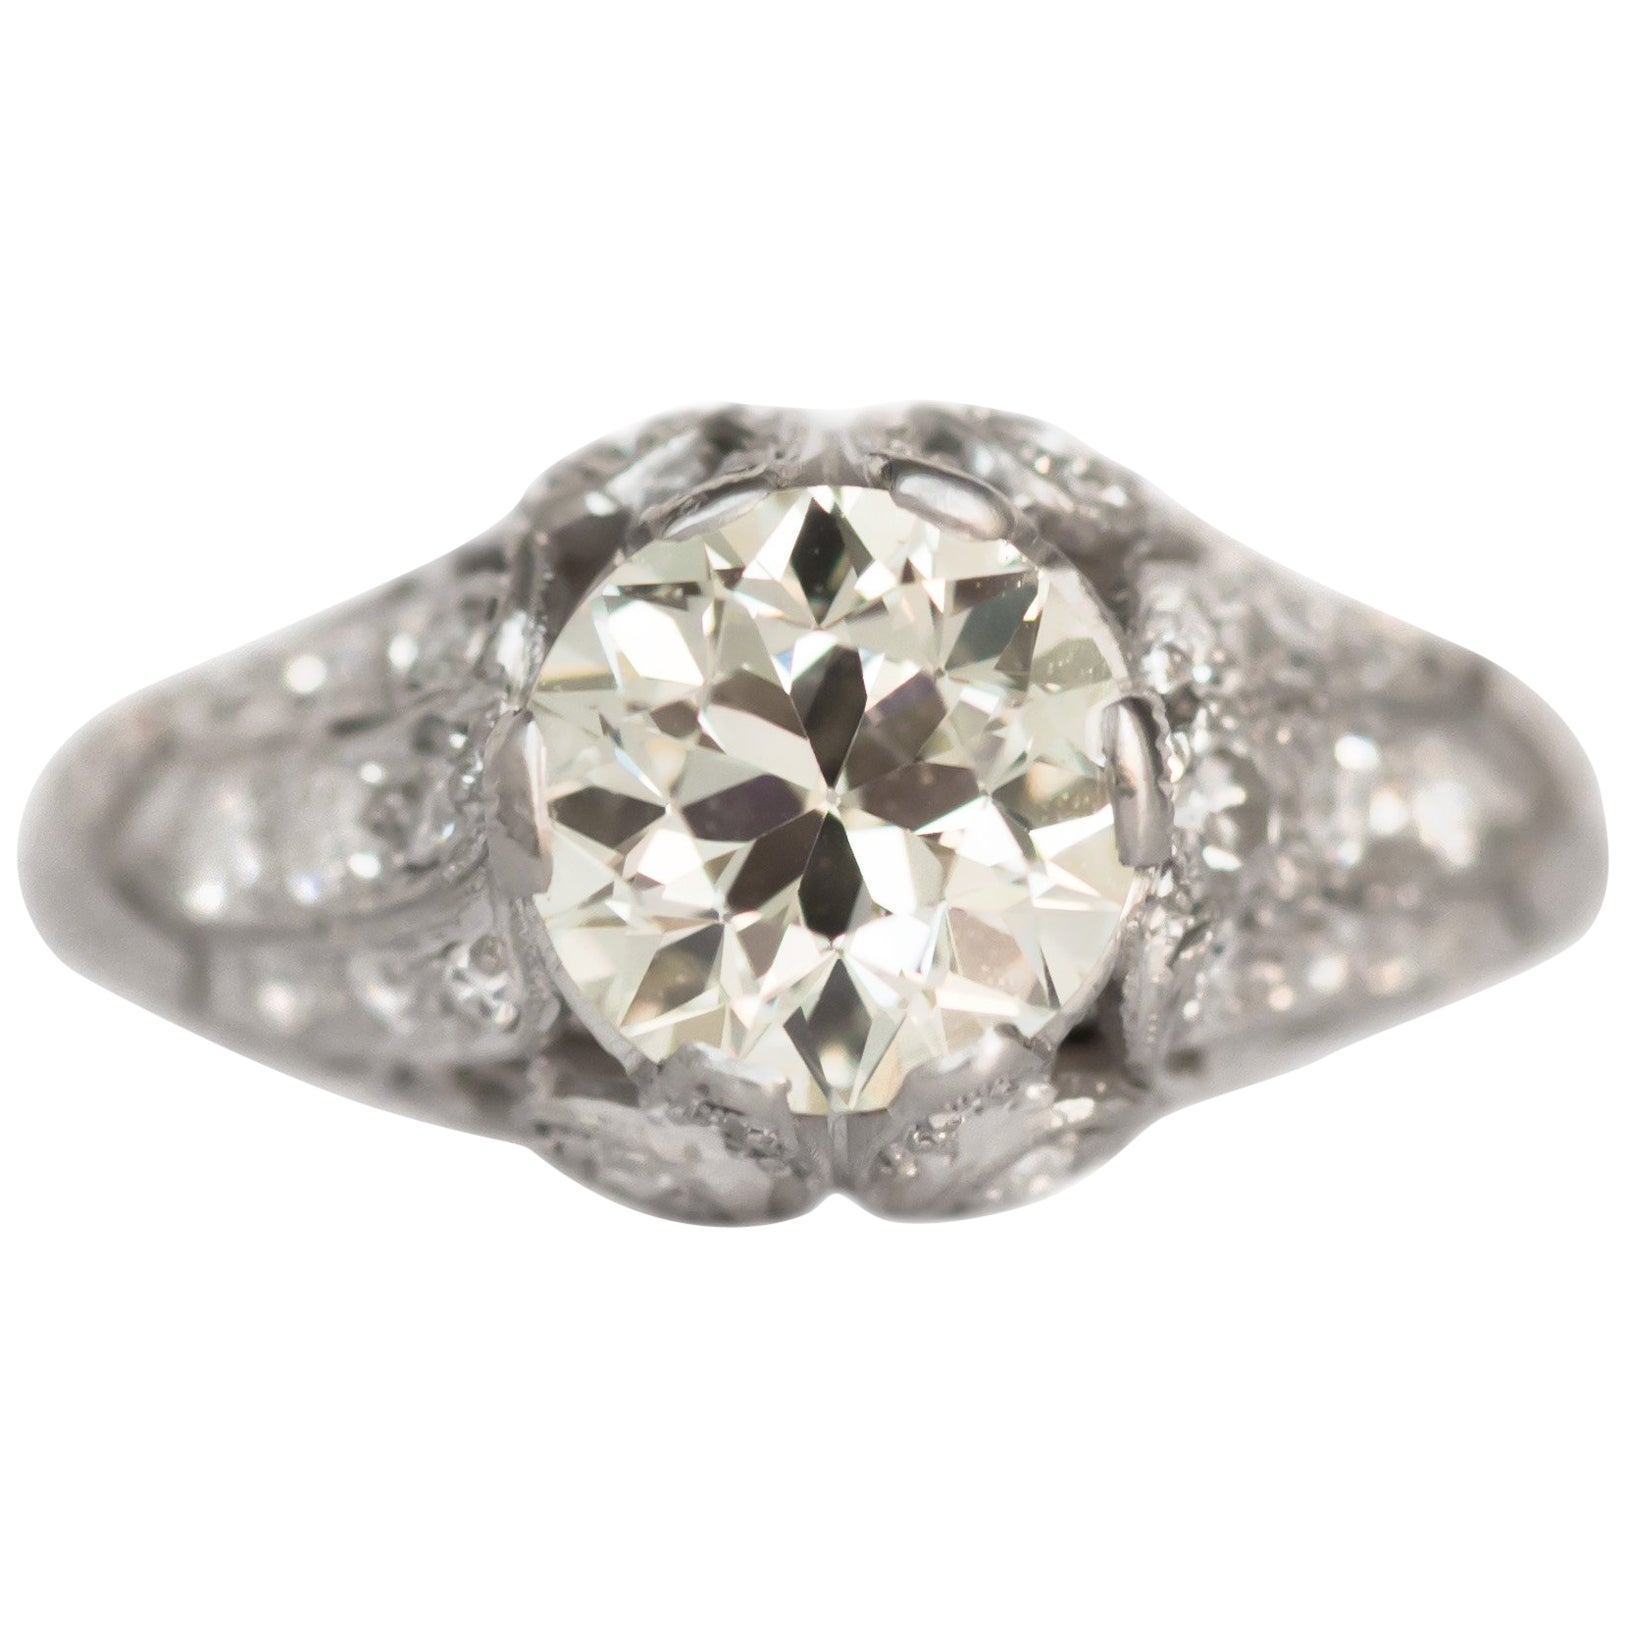 1.59 Carat Diamond Platinum Engagement Ring